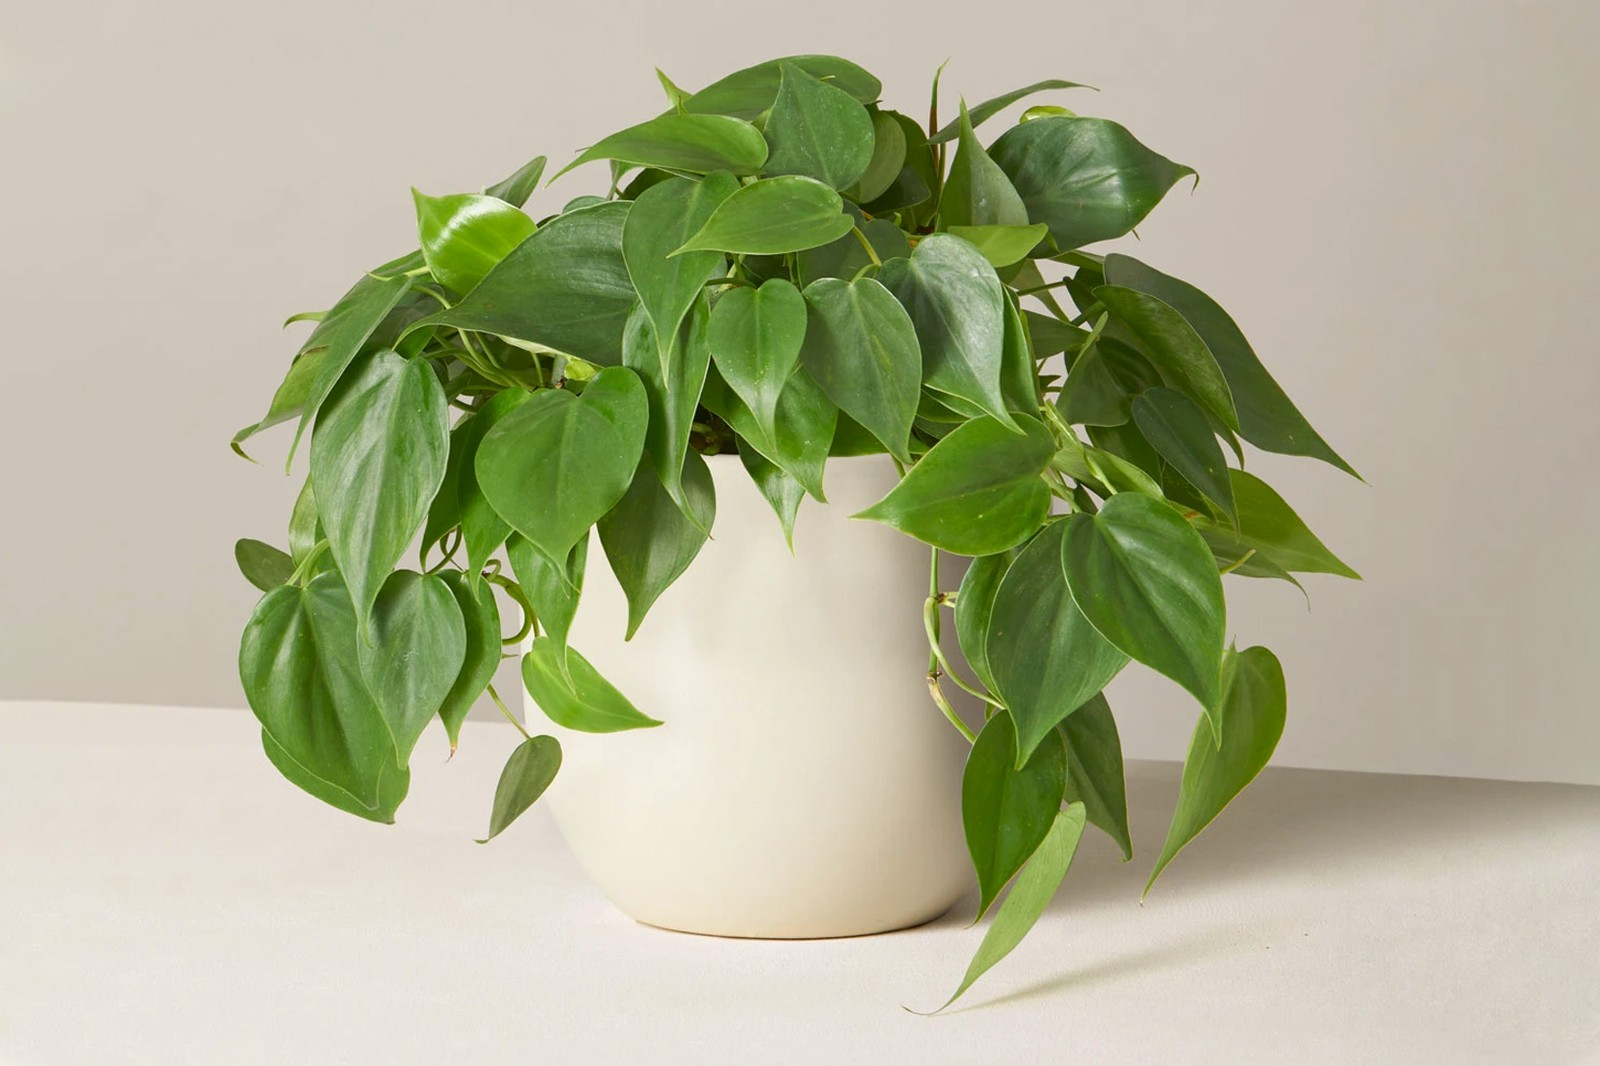 best plants indoor hanging trailing beginners guide home interior the sill anthurium birds nest fern philodendron orchid marble queen pothos erin marino interview